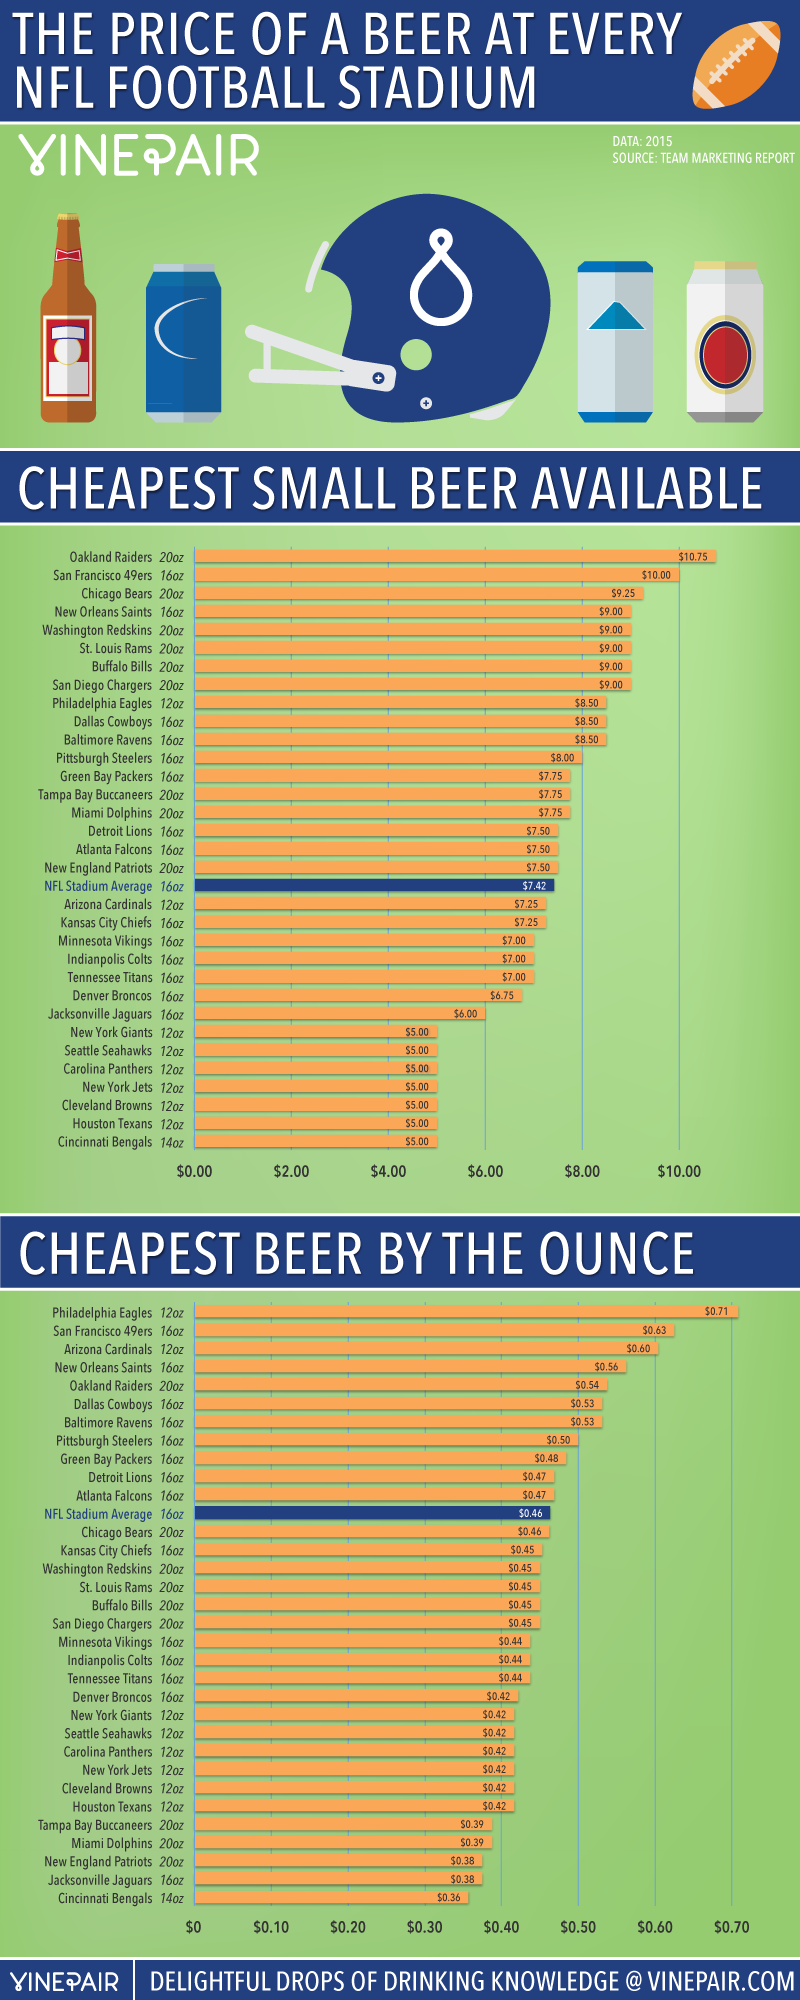 nfl-stadium-beer-prices-2015